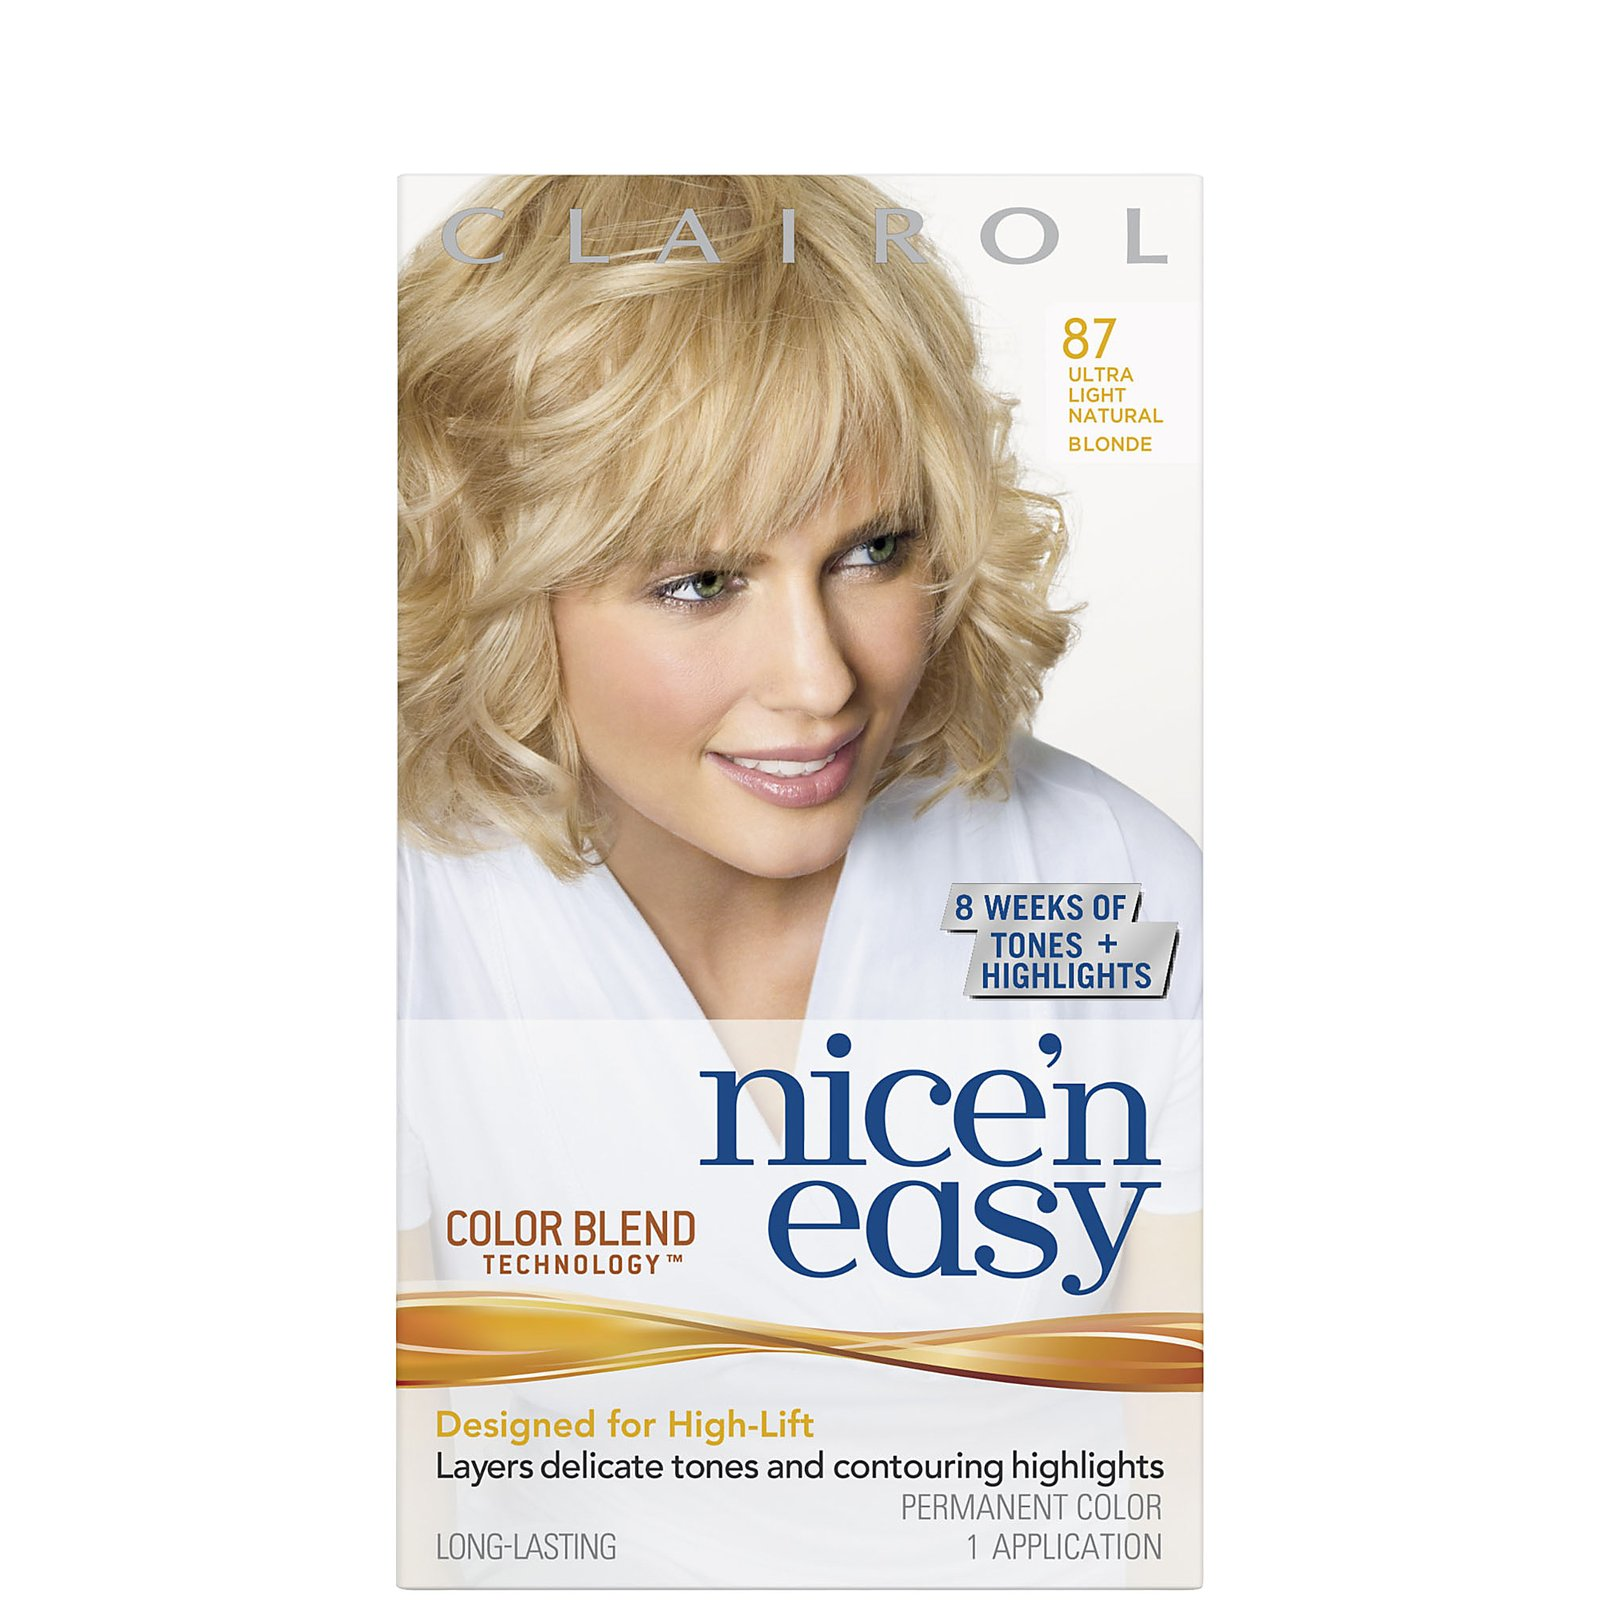 Free Clairol Color Blend Foam Giveaway CLOSED